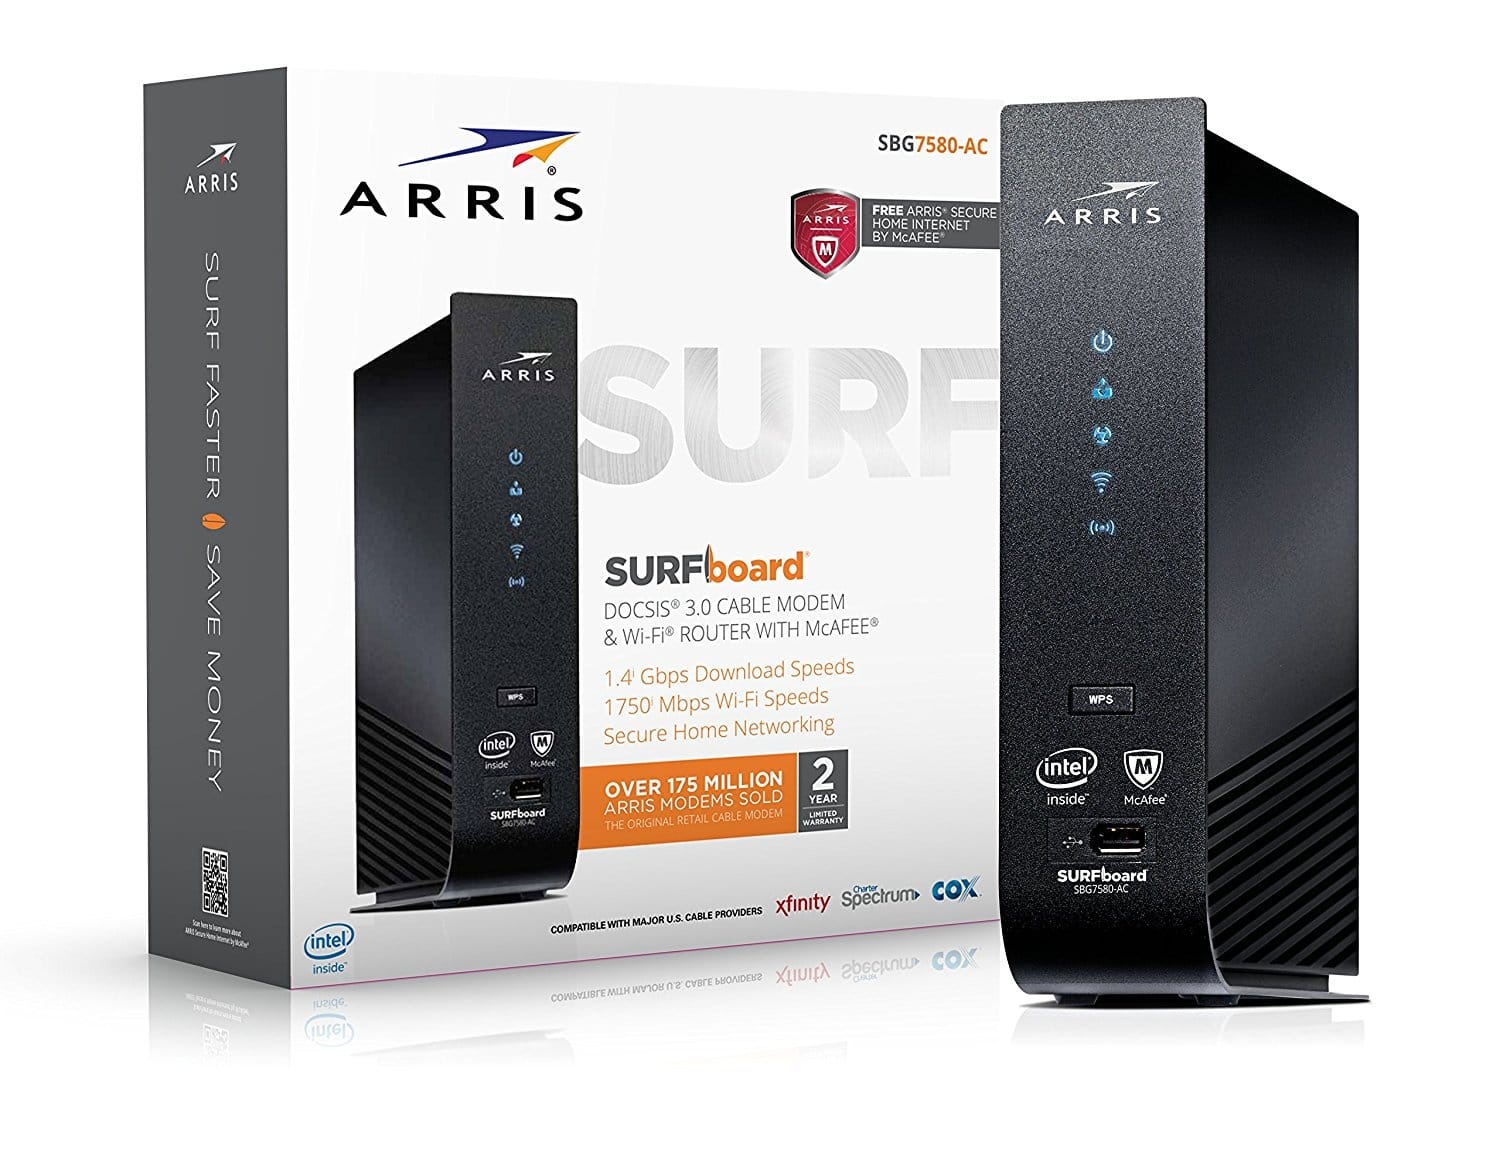 ARRIS SURFboard SBG7400AC2 24x8 DOCSIS 3.0 Cable Modem / AC2350 Wi-Fi Router / McAfee Whole Home Internet Protection- Black - $168.82 ($30 Coupon)